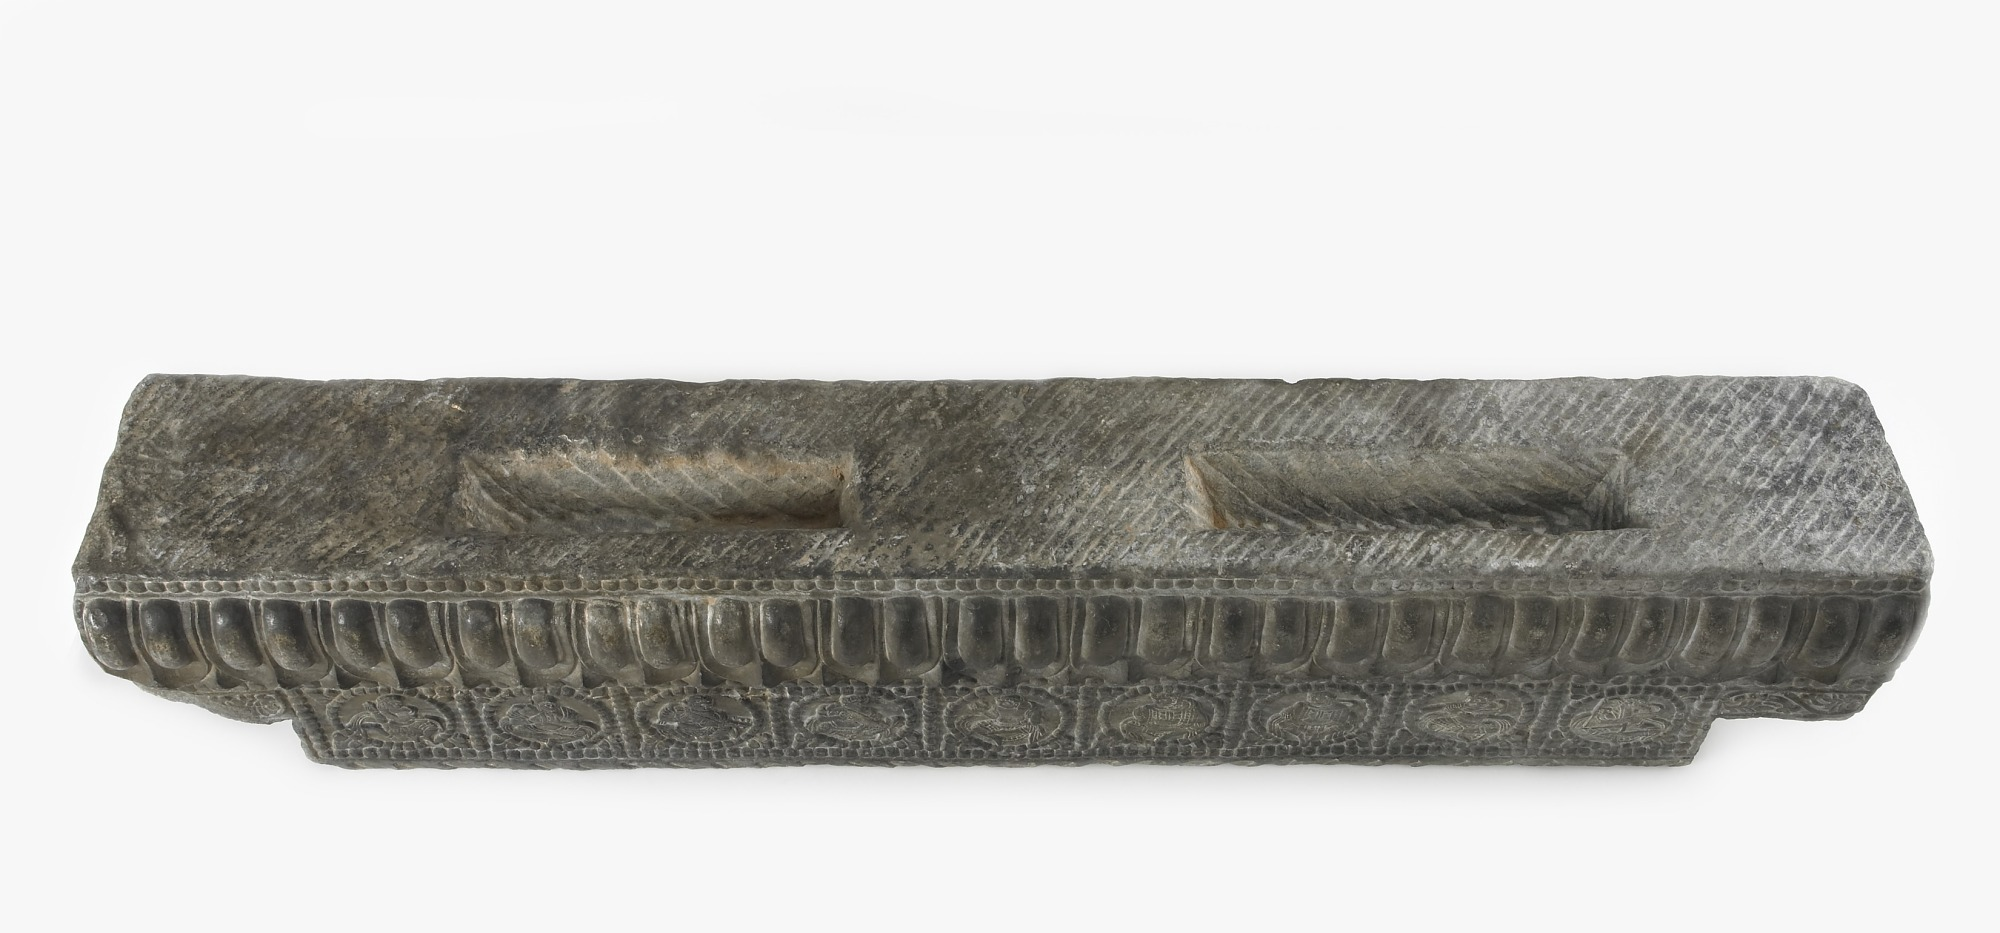 Lateral stretcher from the base of a funerary couch with Sogdian musicians and a dancer